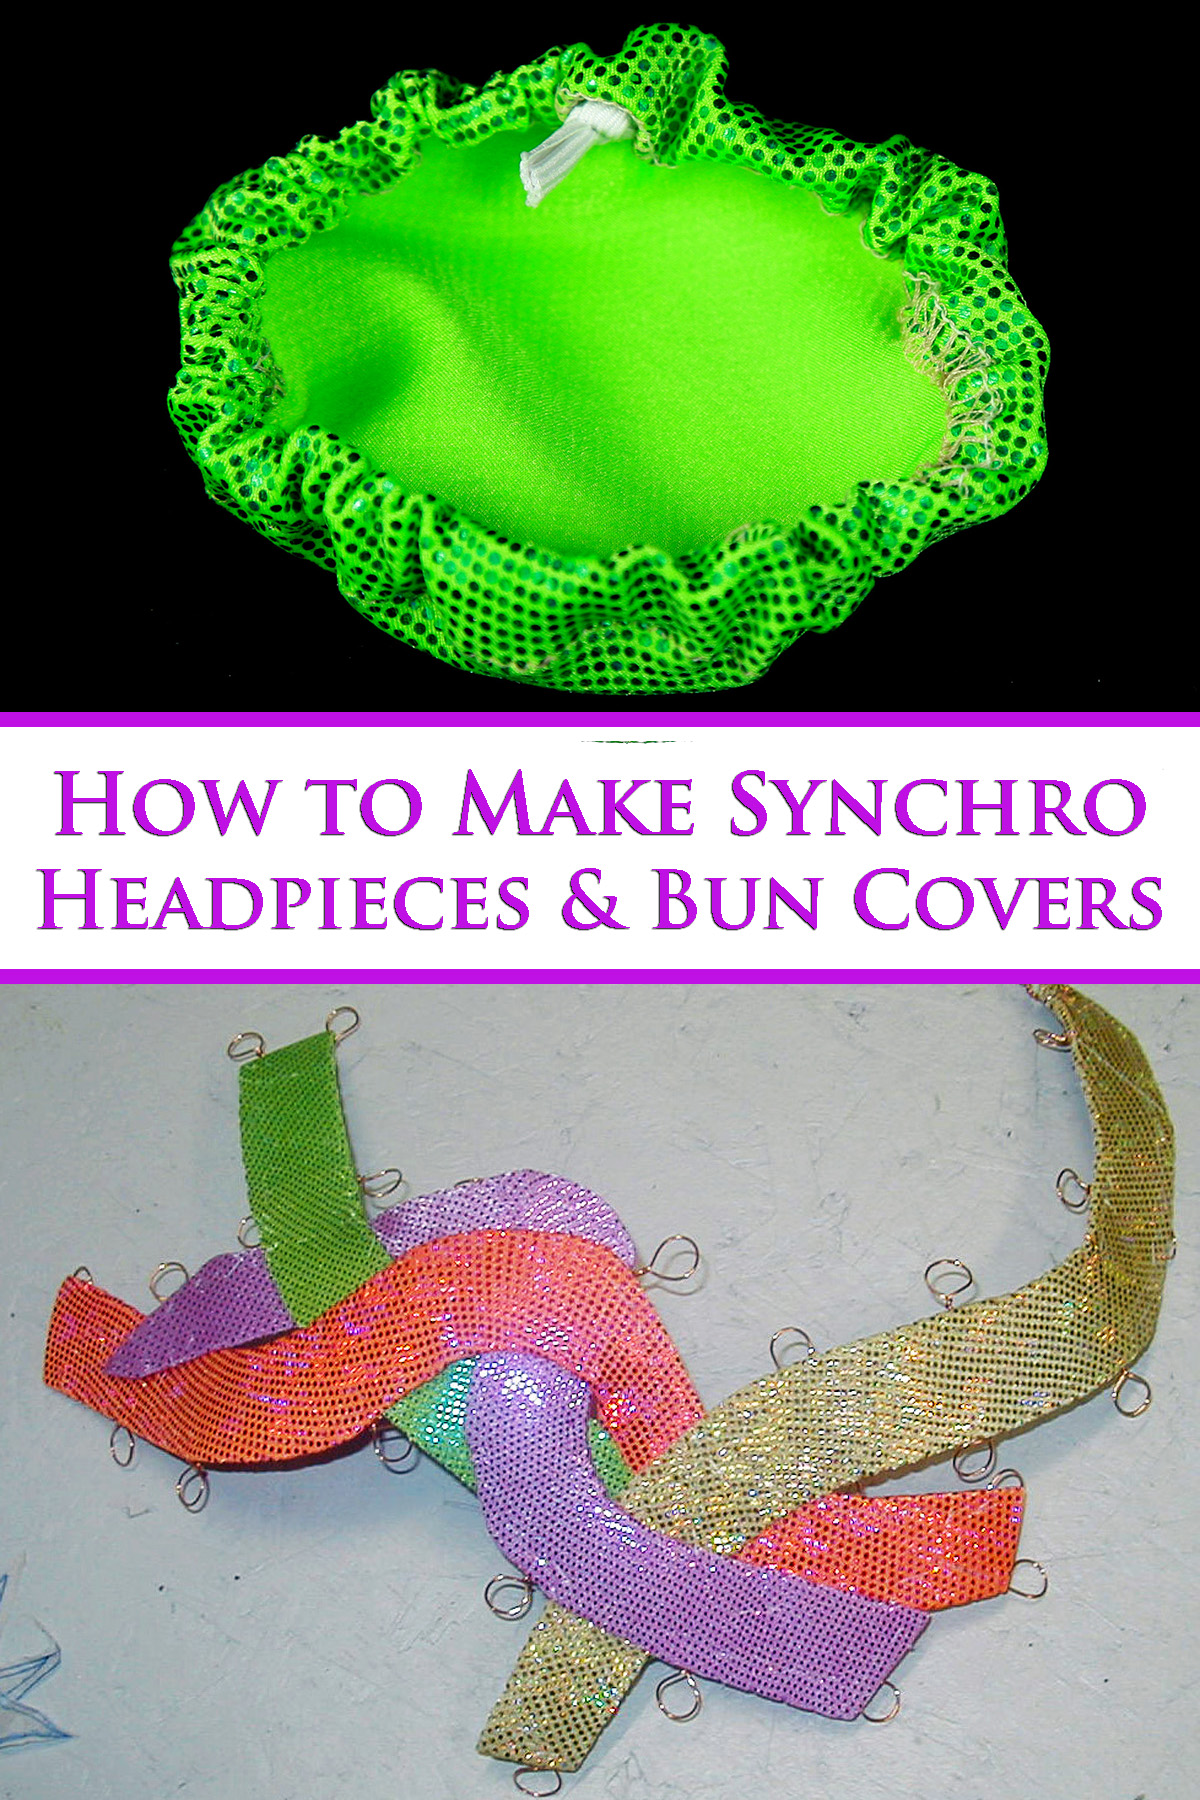 A two photo compilation image, showing a bright green synchro bun cover, and a brightly coloured, mulito-colour synchro headpiece.